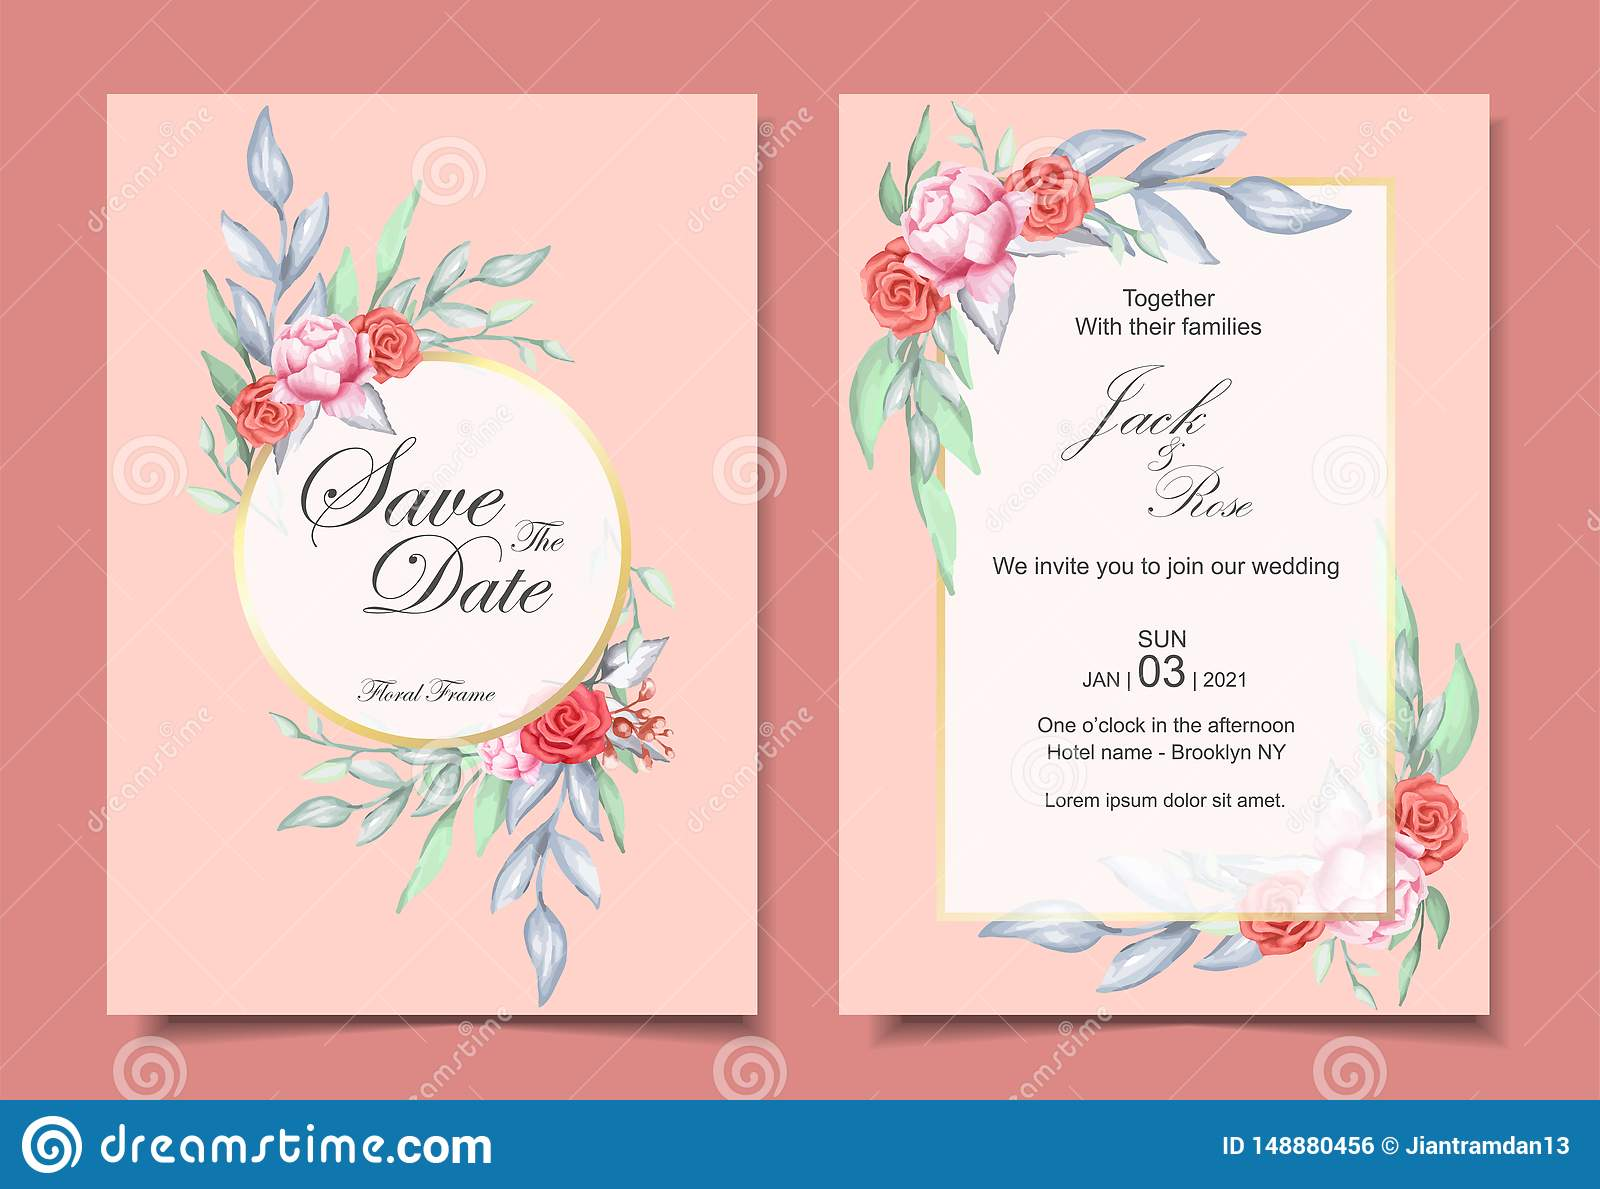 Wedding Invitation Set of Watercolor Floral Ornament and Golden Frame with Elegant Color Design Concept. Roses and Peony Flower